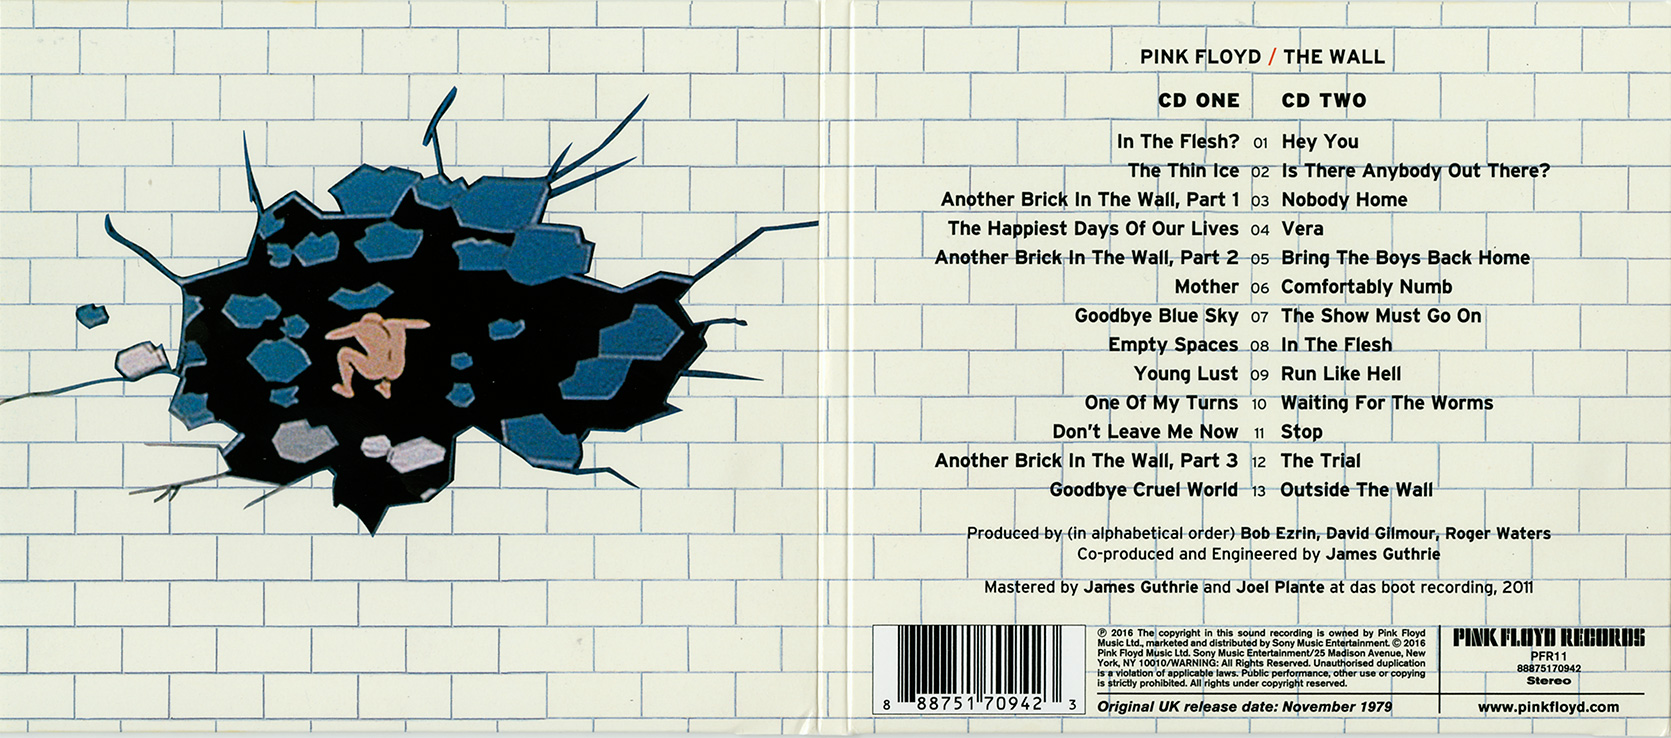 Pink Floyd 2016 CD reissues under